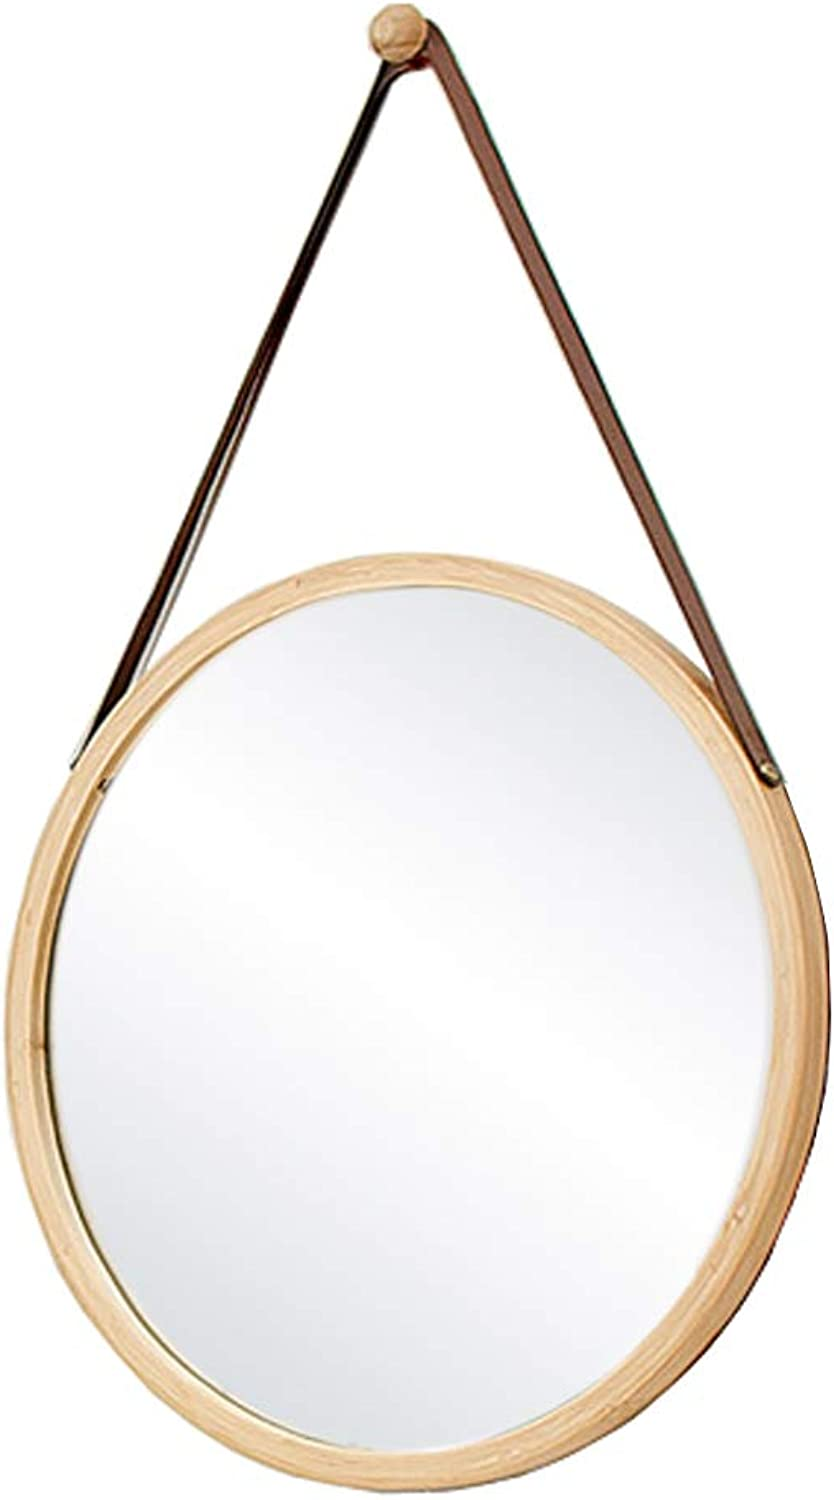 Wall Mirror   Decorative Bathroom Mirrors Contemporary Round Bamboo Framed Design   greenical Hangs Vanity Makeup Mirrors (Diameter 15 18 Inch)